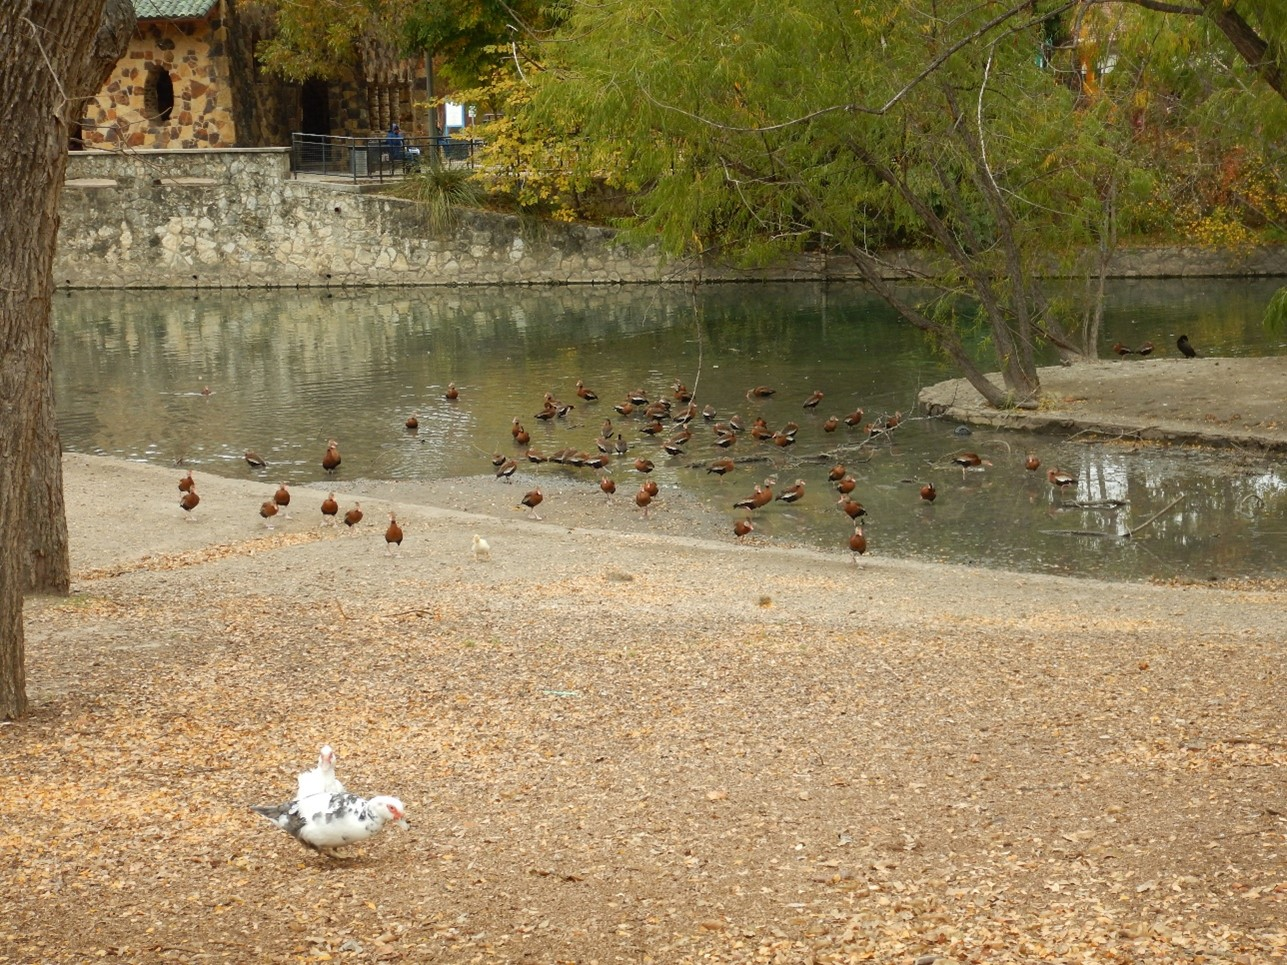 A group of ducks gather at a park